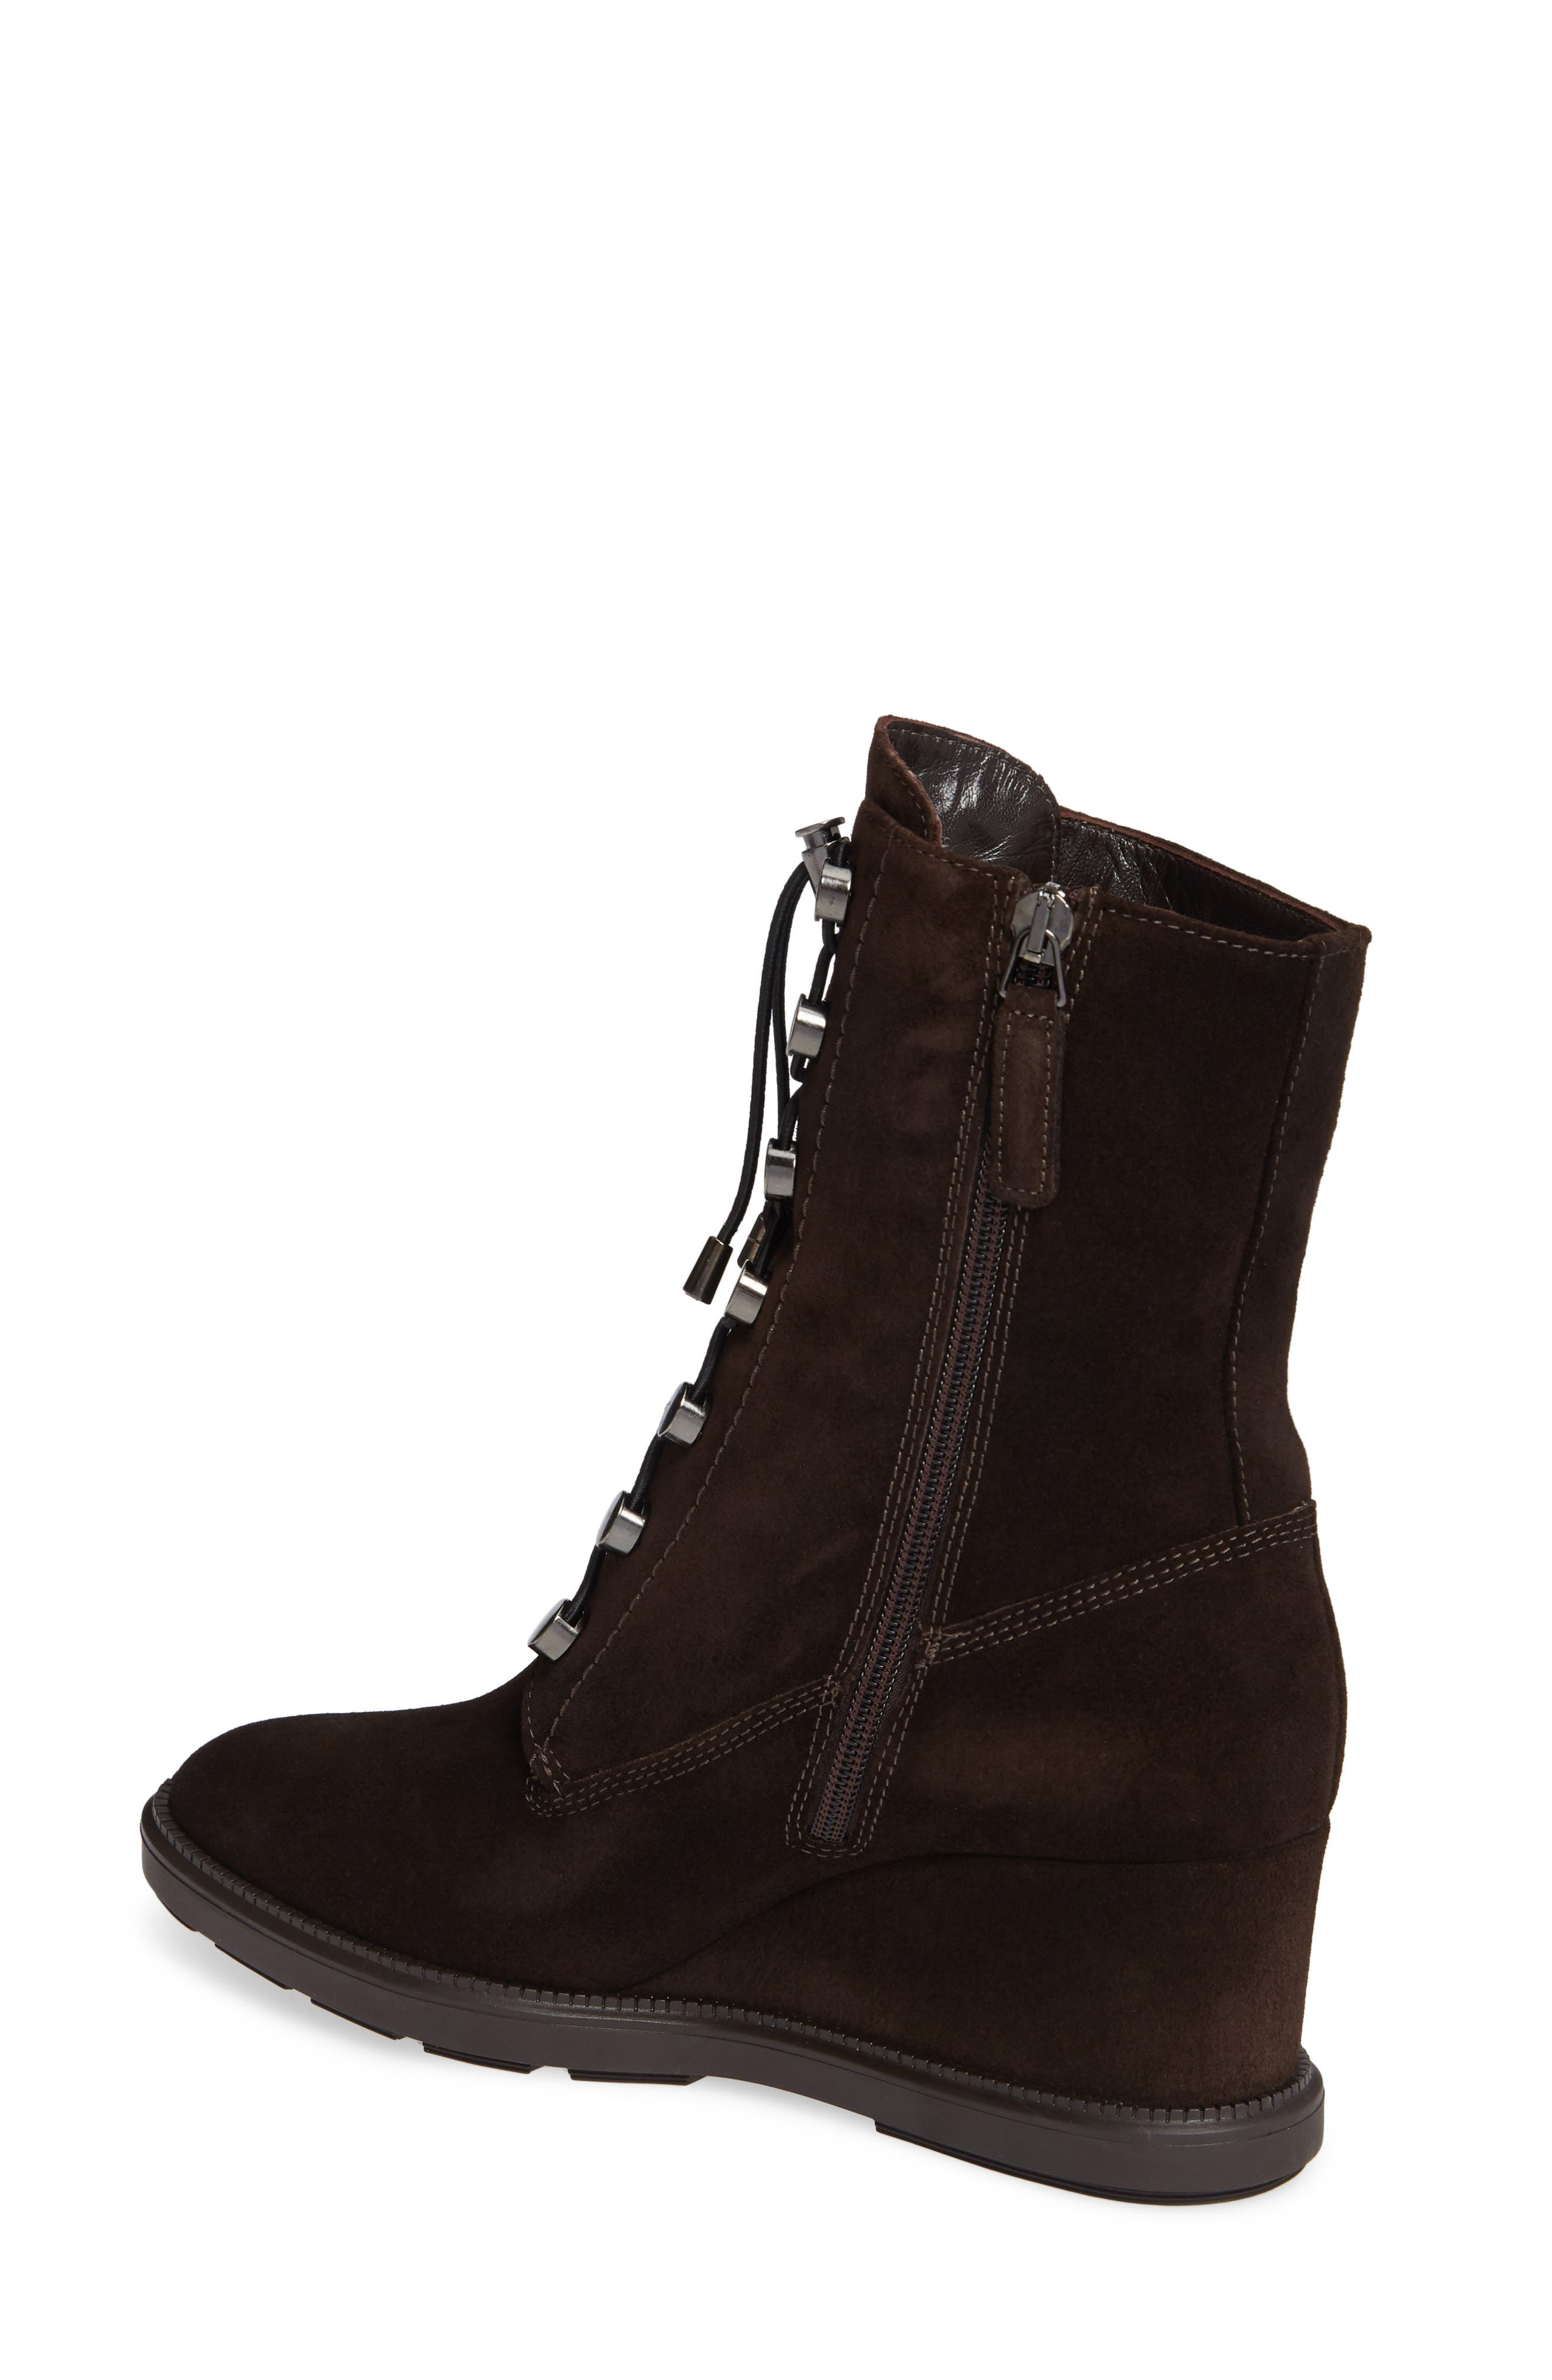 Campbell Wedge Boot,                             Alternate thumbnail 2, color,                             ESPRESSO SUEDE